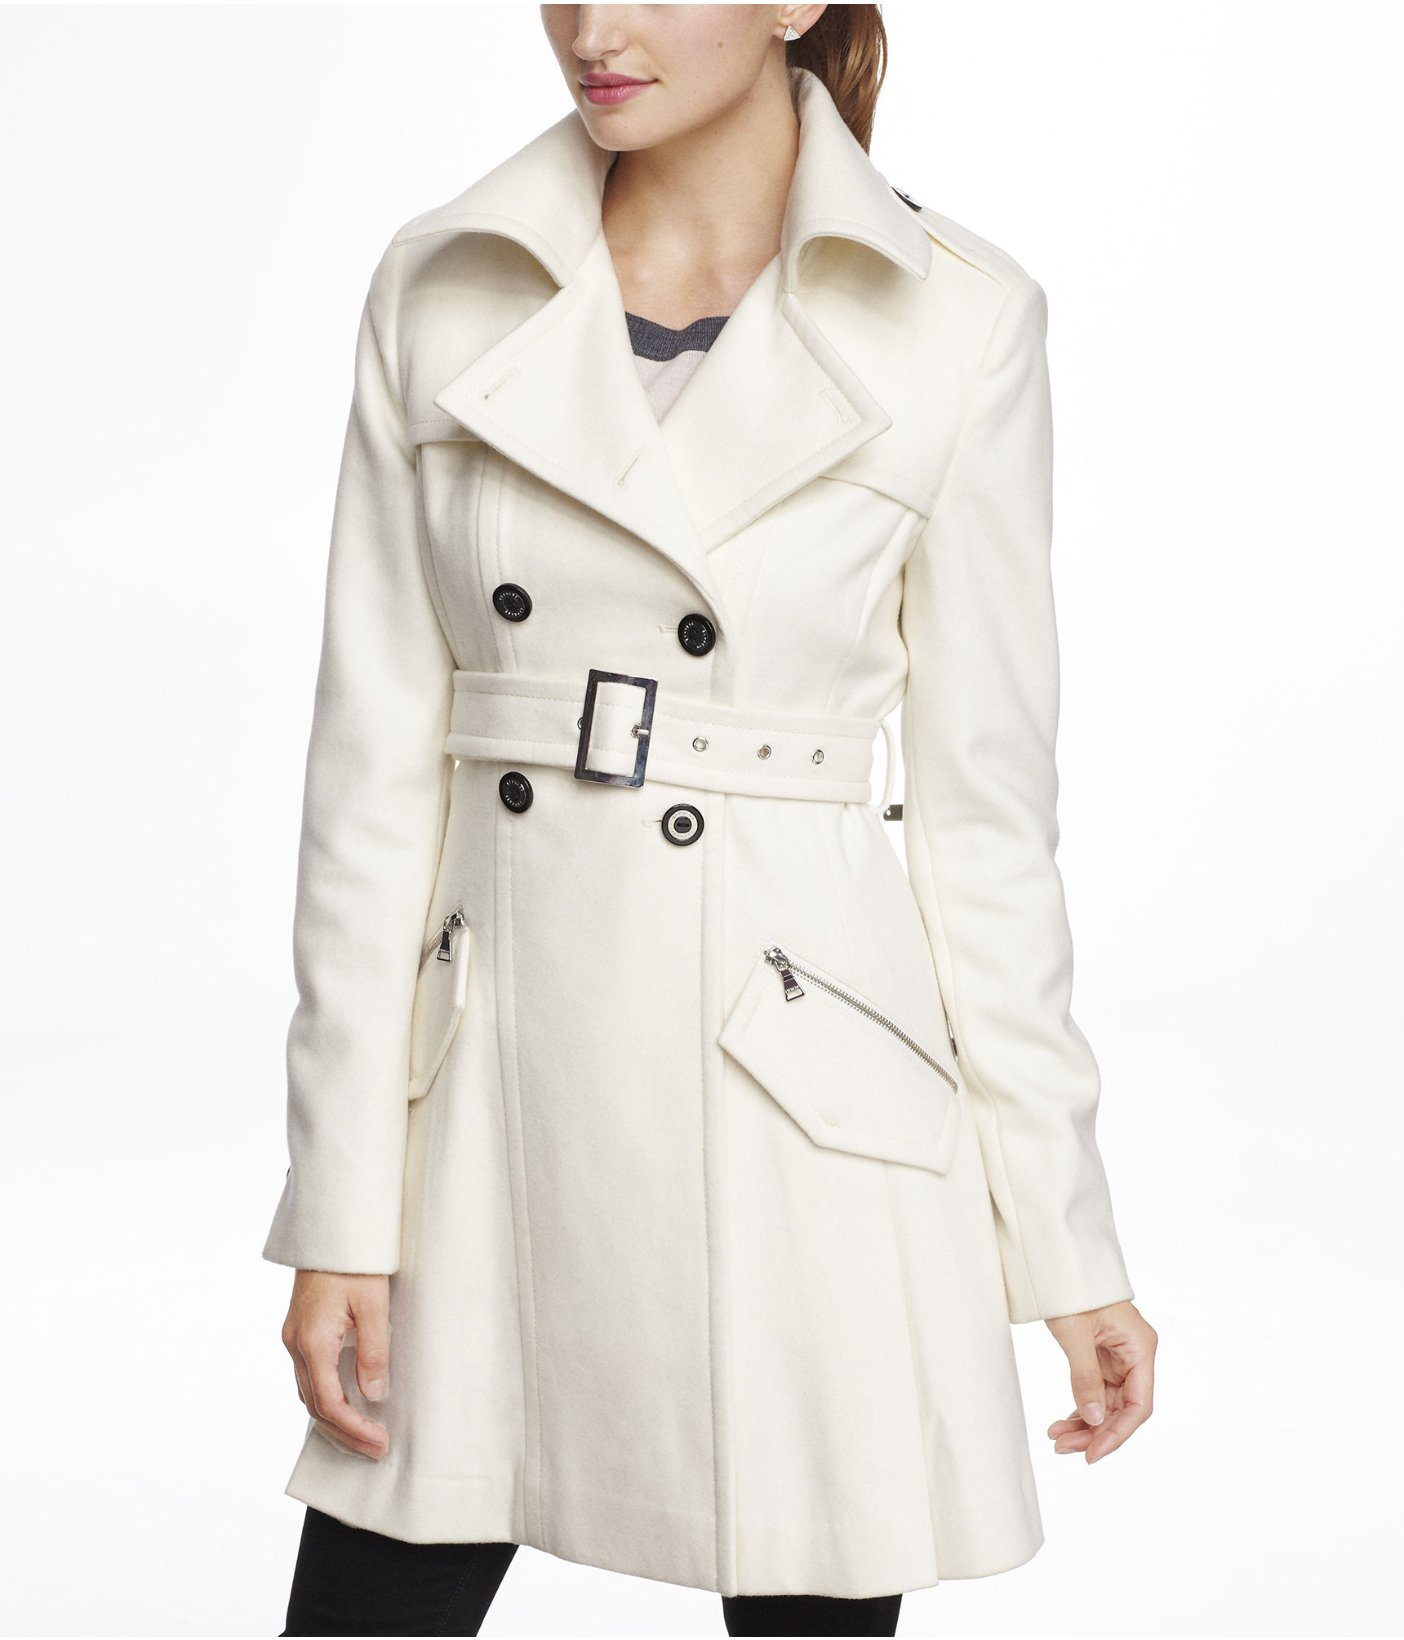 137fa45c04c2 Express Wool Blend Fit and Flare Trench Coat in Natural - Lyst